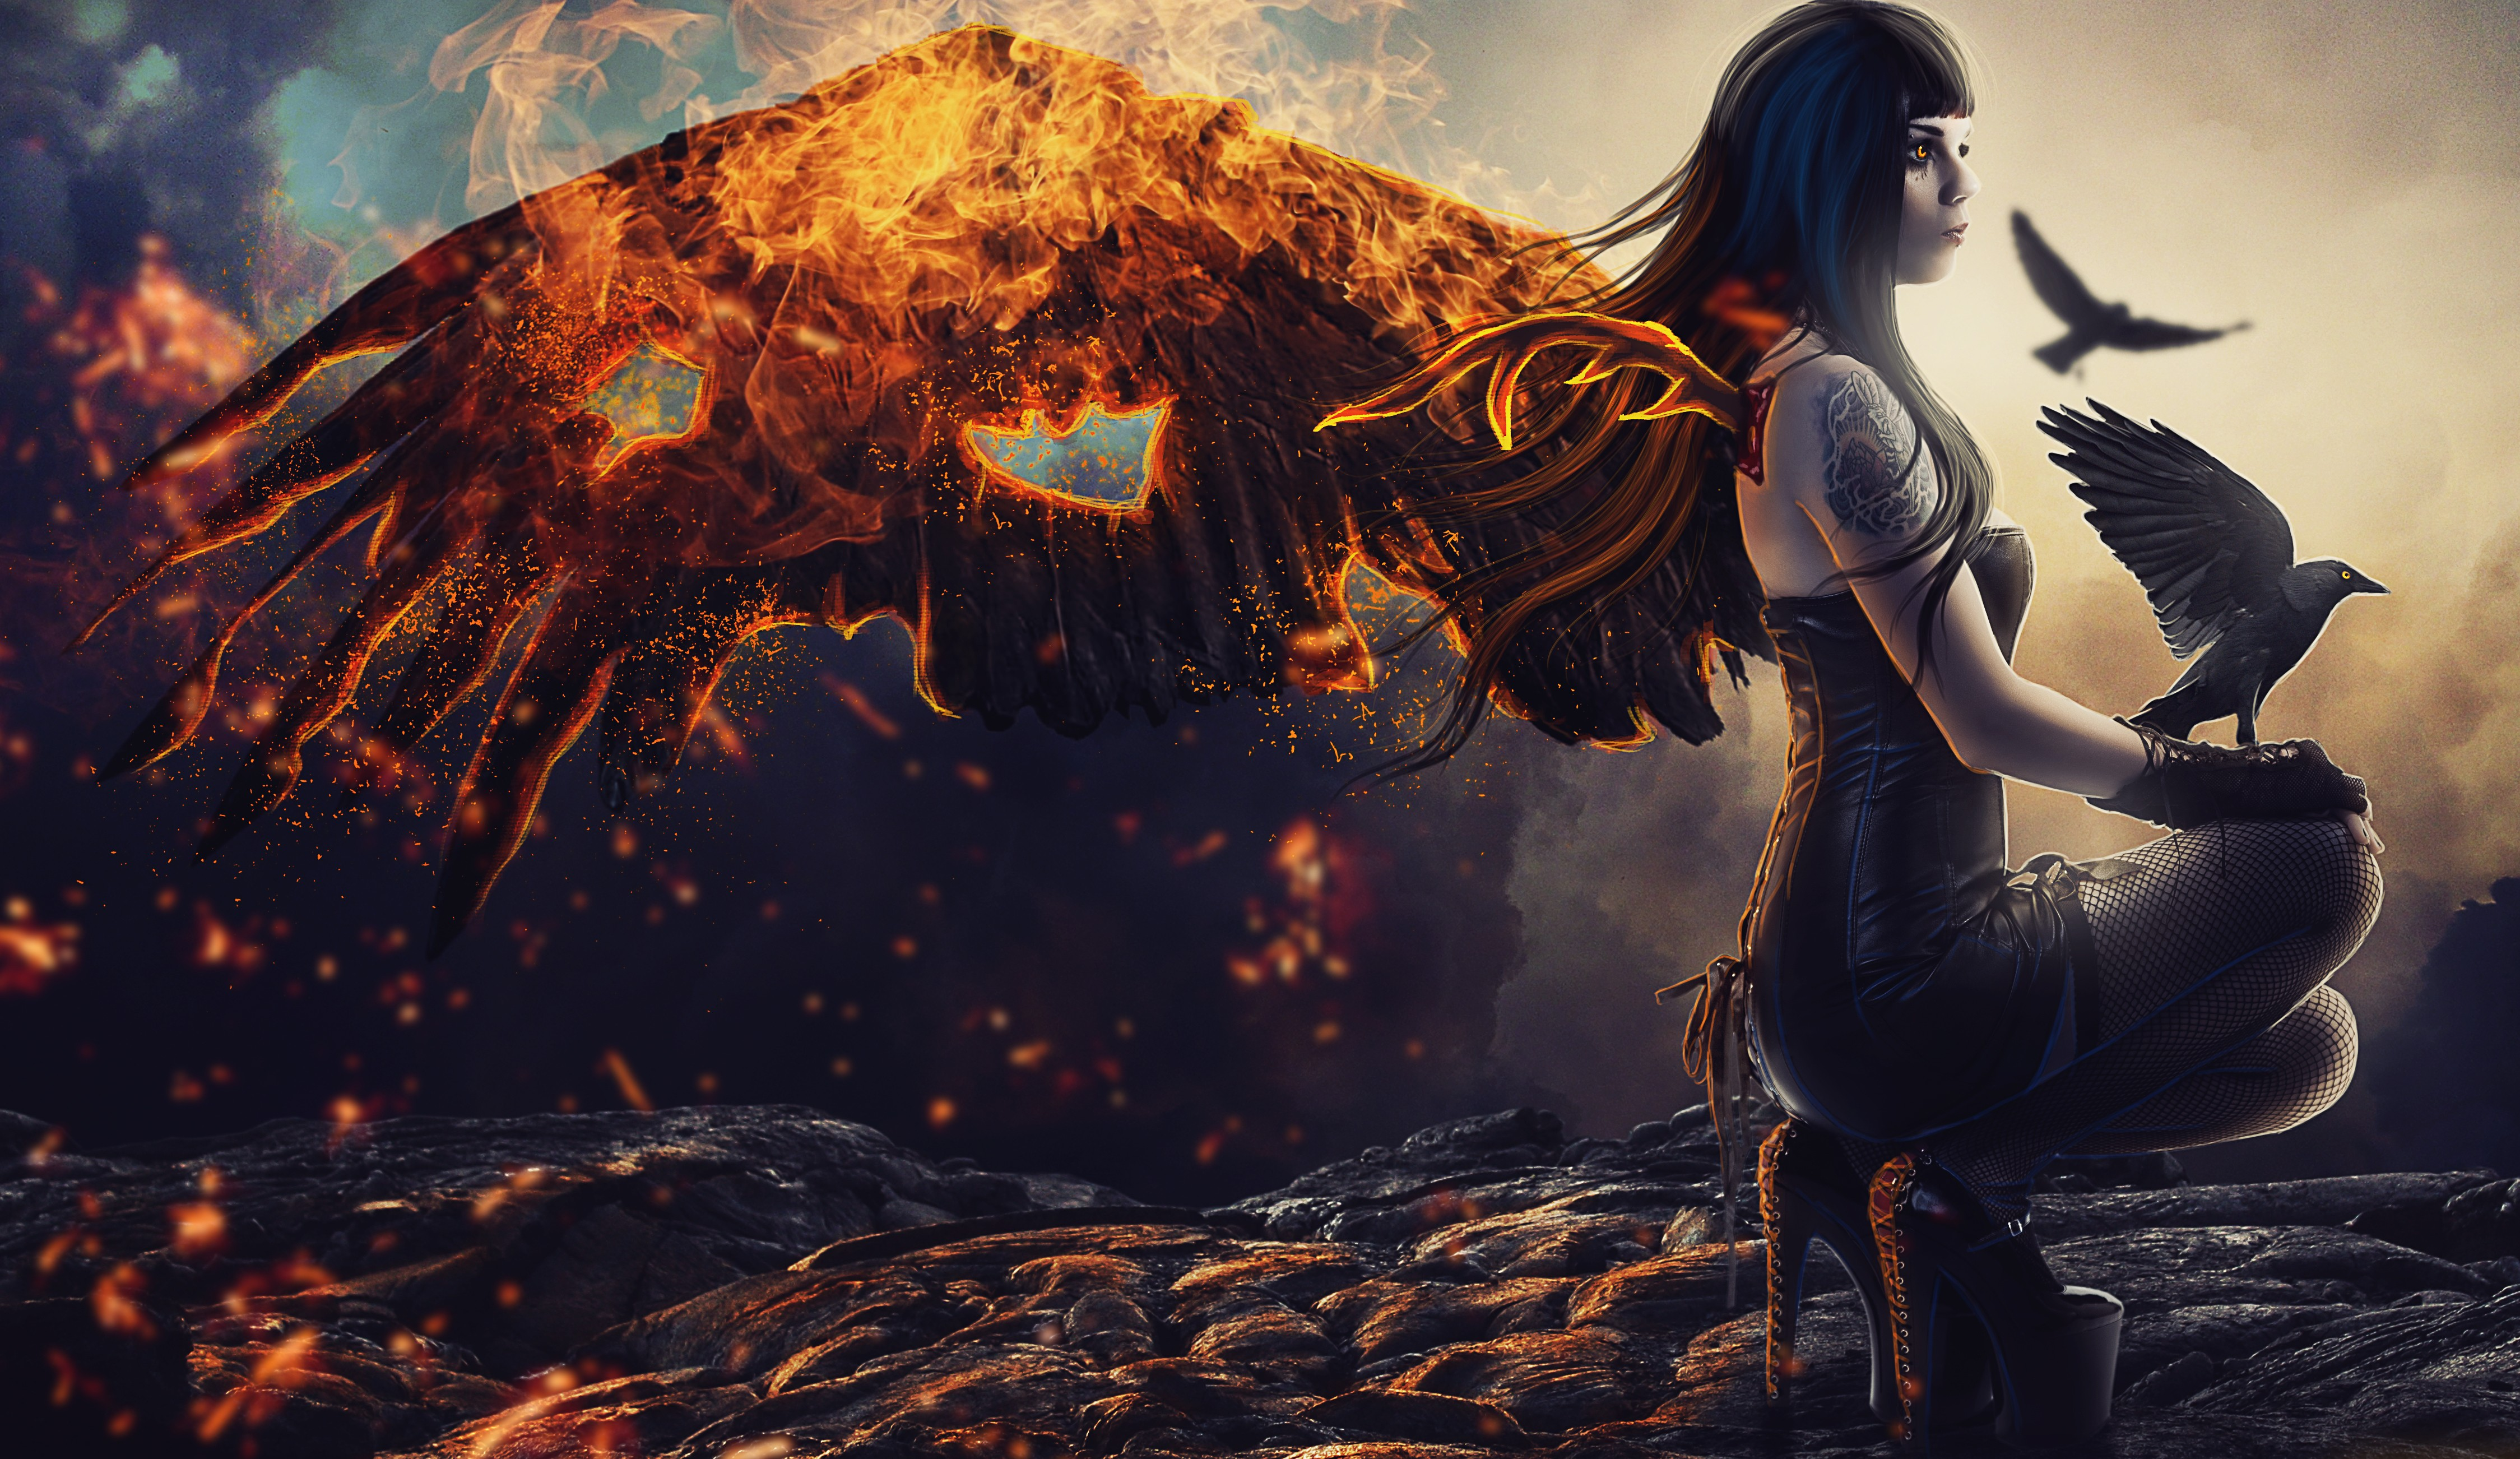 Raven girl artwork 5k hd artist 4k wallpapers images - Digital art wallpaper 3840x1080 ...